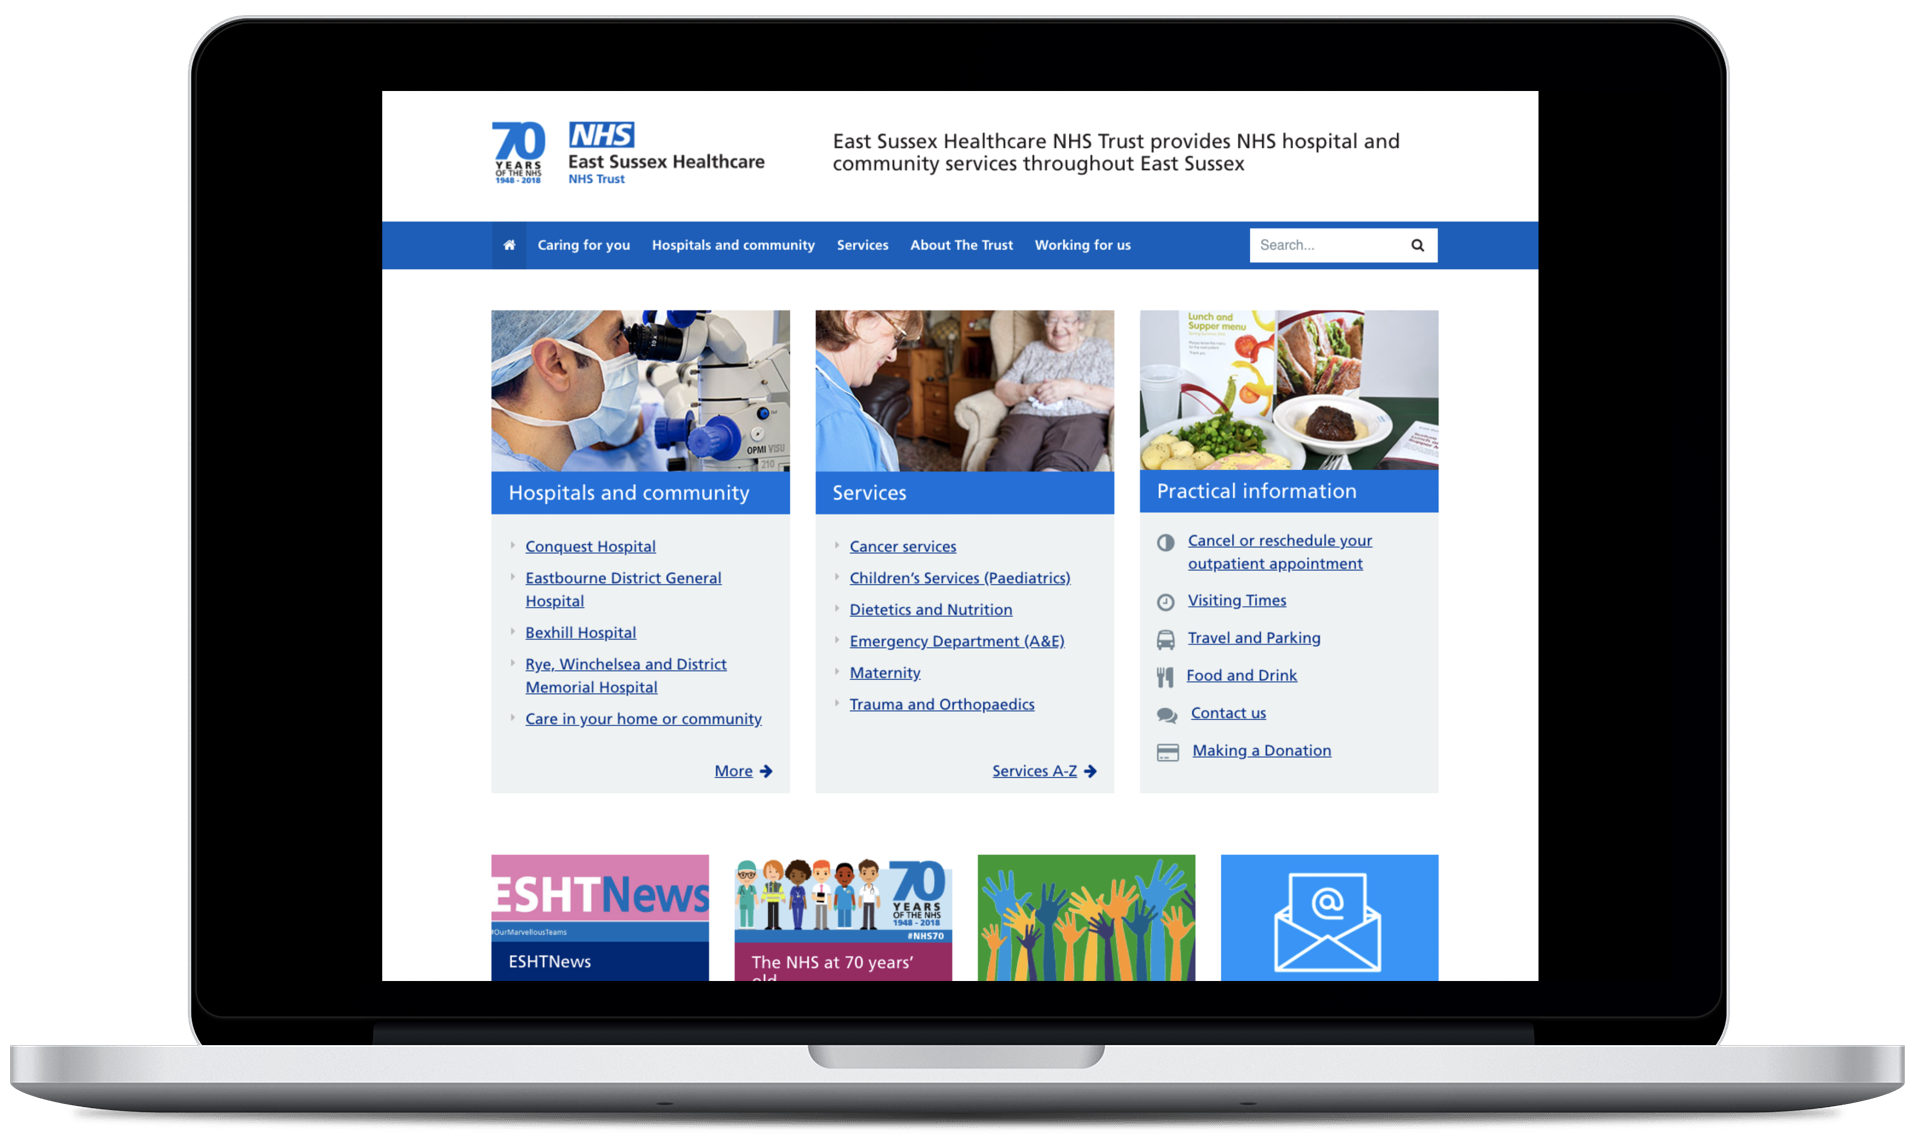 Helping NHS patients find answers quickly with a mobile-first site